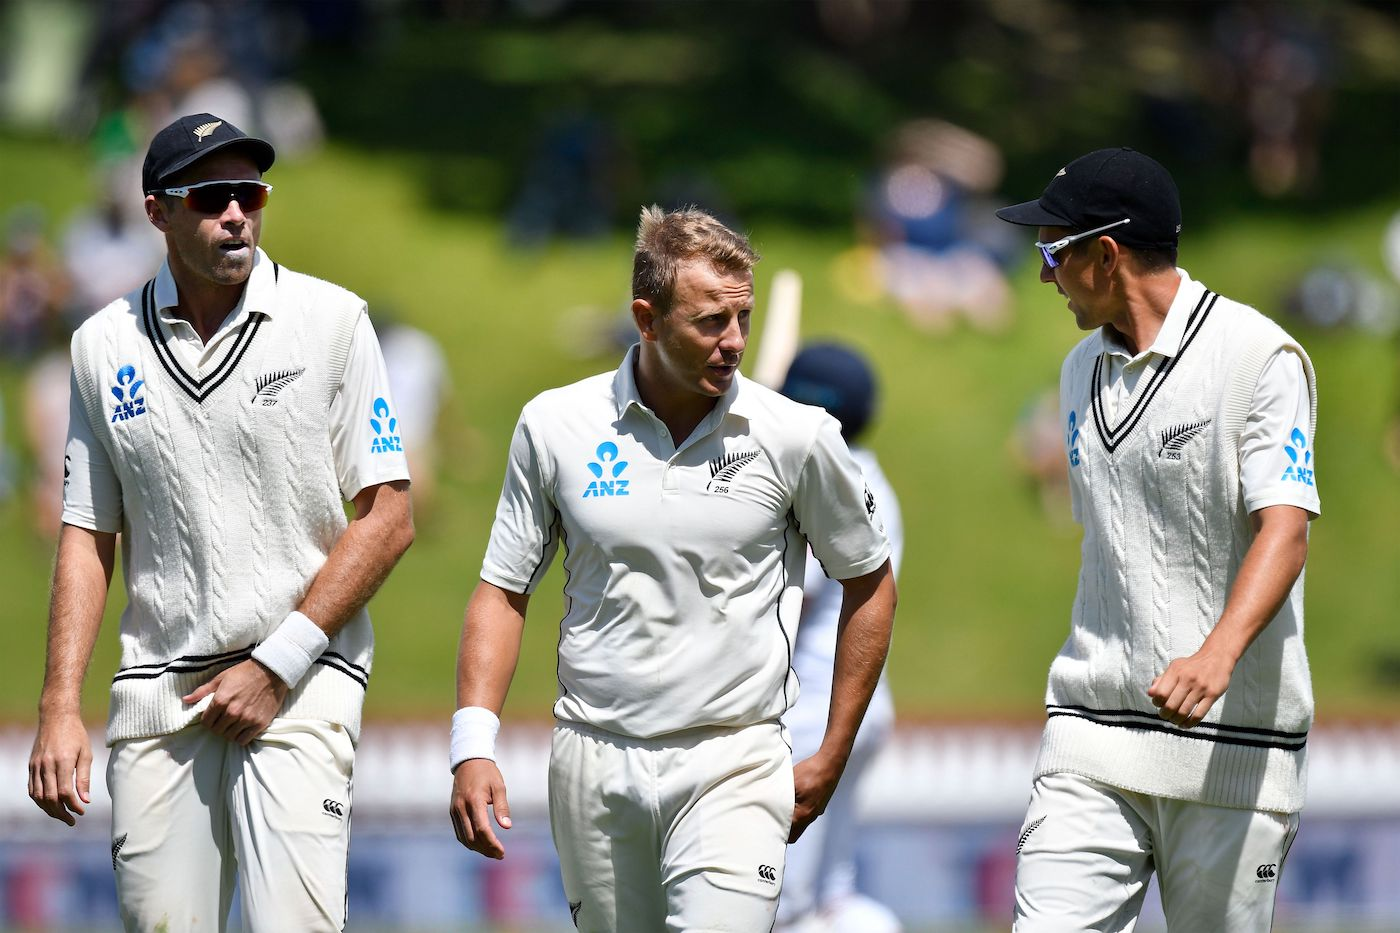 Aakash Chopra: Boult, Southee and Wagner: what the Indian top order must  watch for